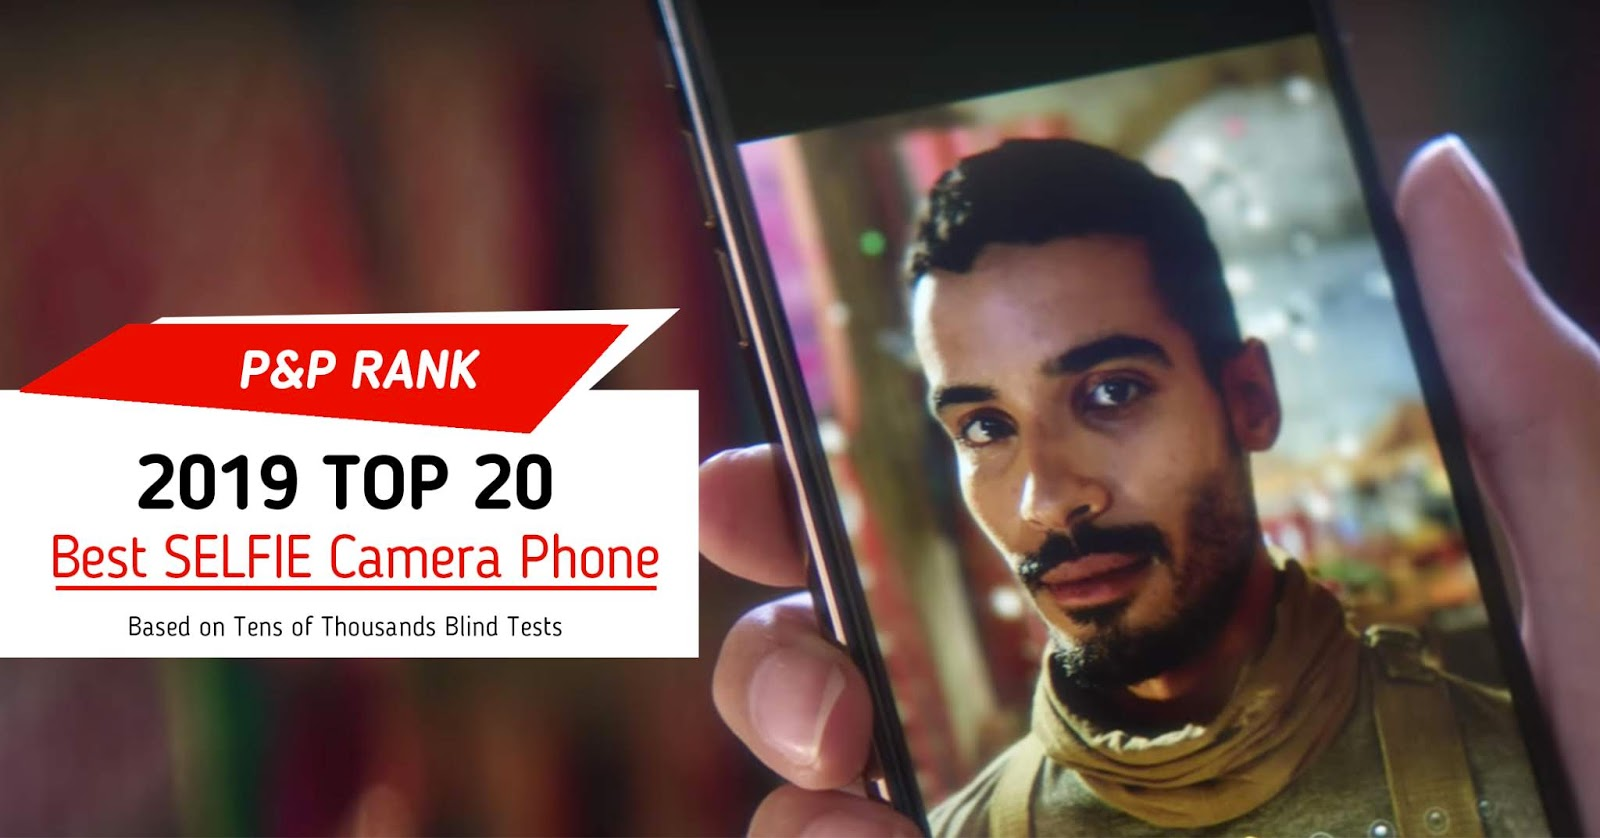 Based on 151,093 Blind tests. The P&P Rank offers Best Camera Phone and Best Selfie Camera Top 20 based on tens of thousands blind tests